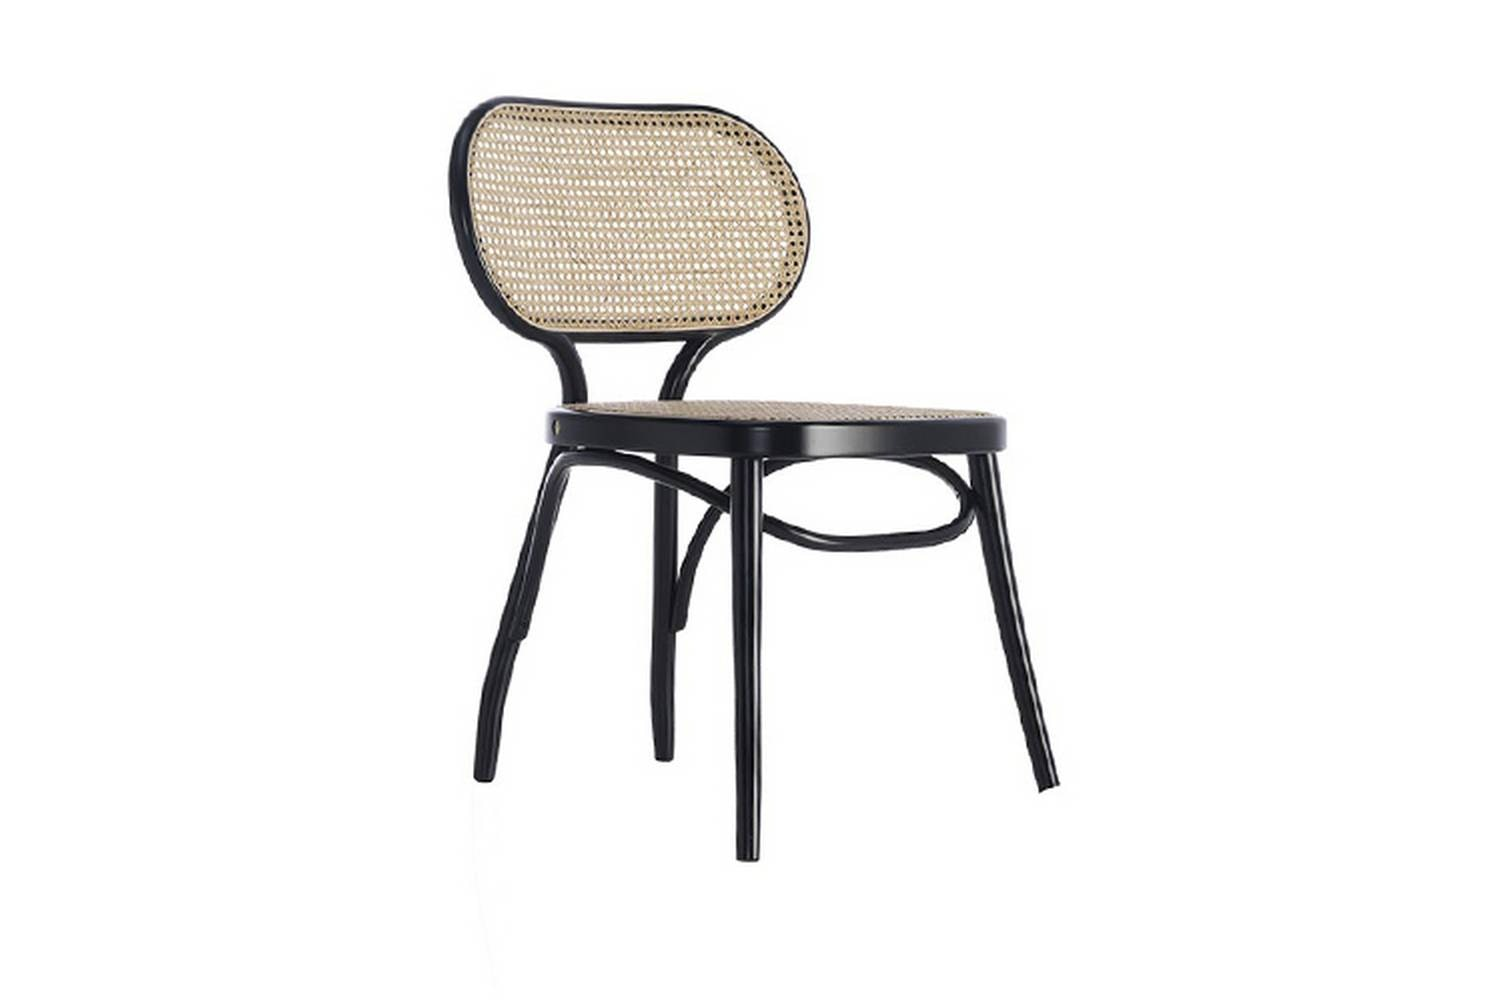 Bodystuhl Chair by Nigel Coates for Wiener GTV Design